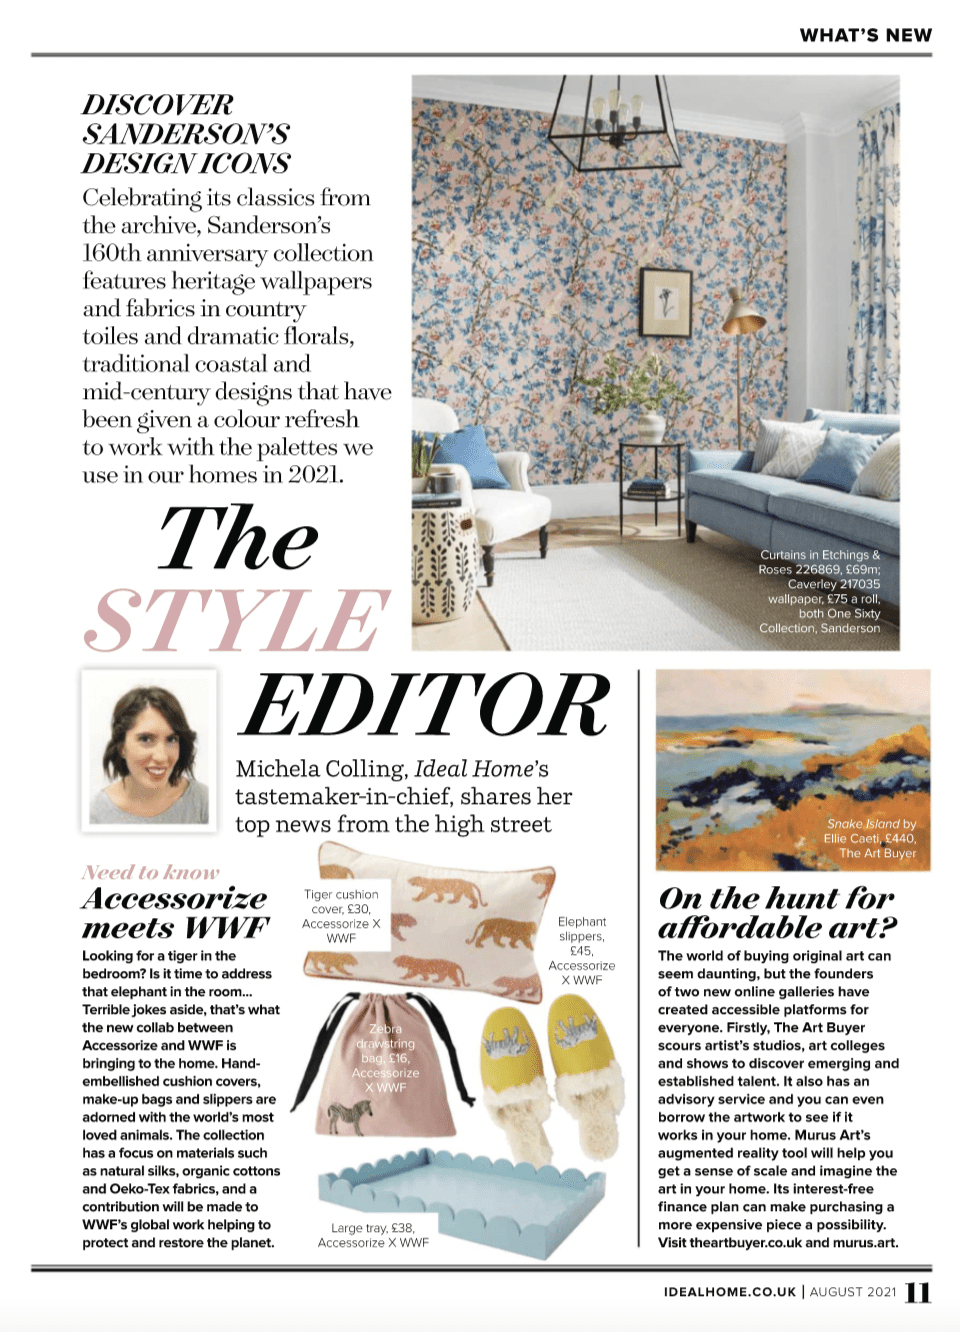 The Art Buyer Gallery in Ideal Home Magazine Affordable Art Feature UK